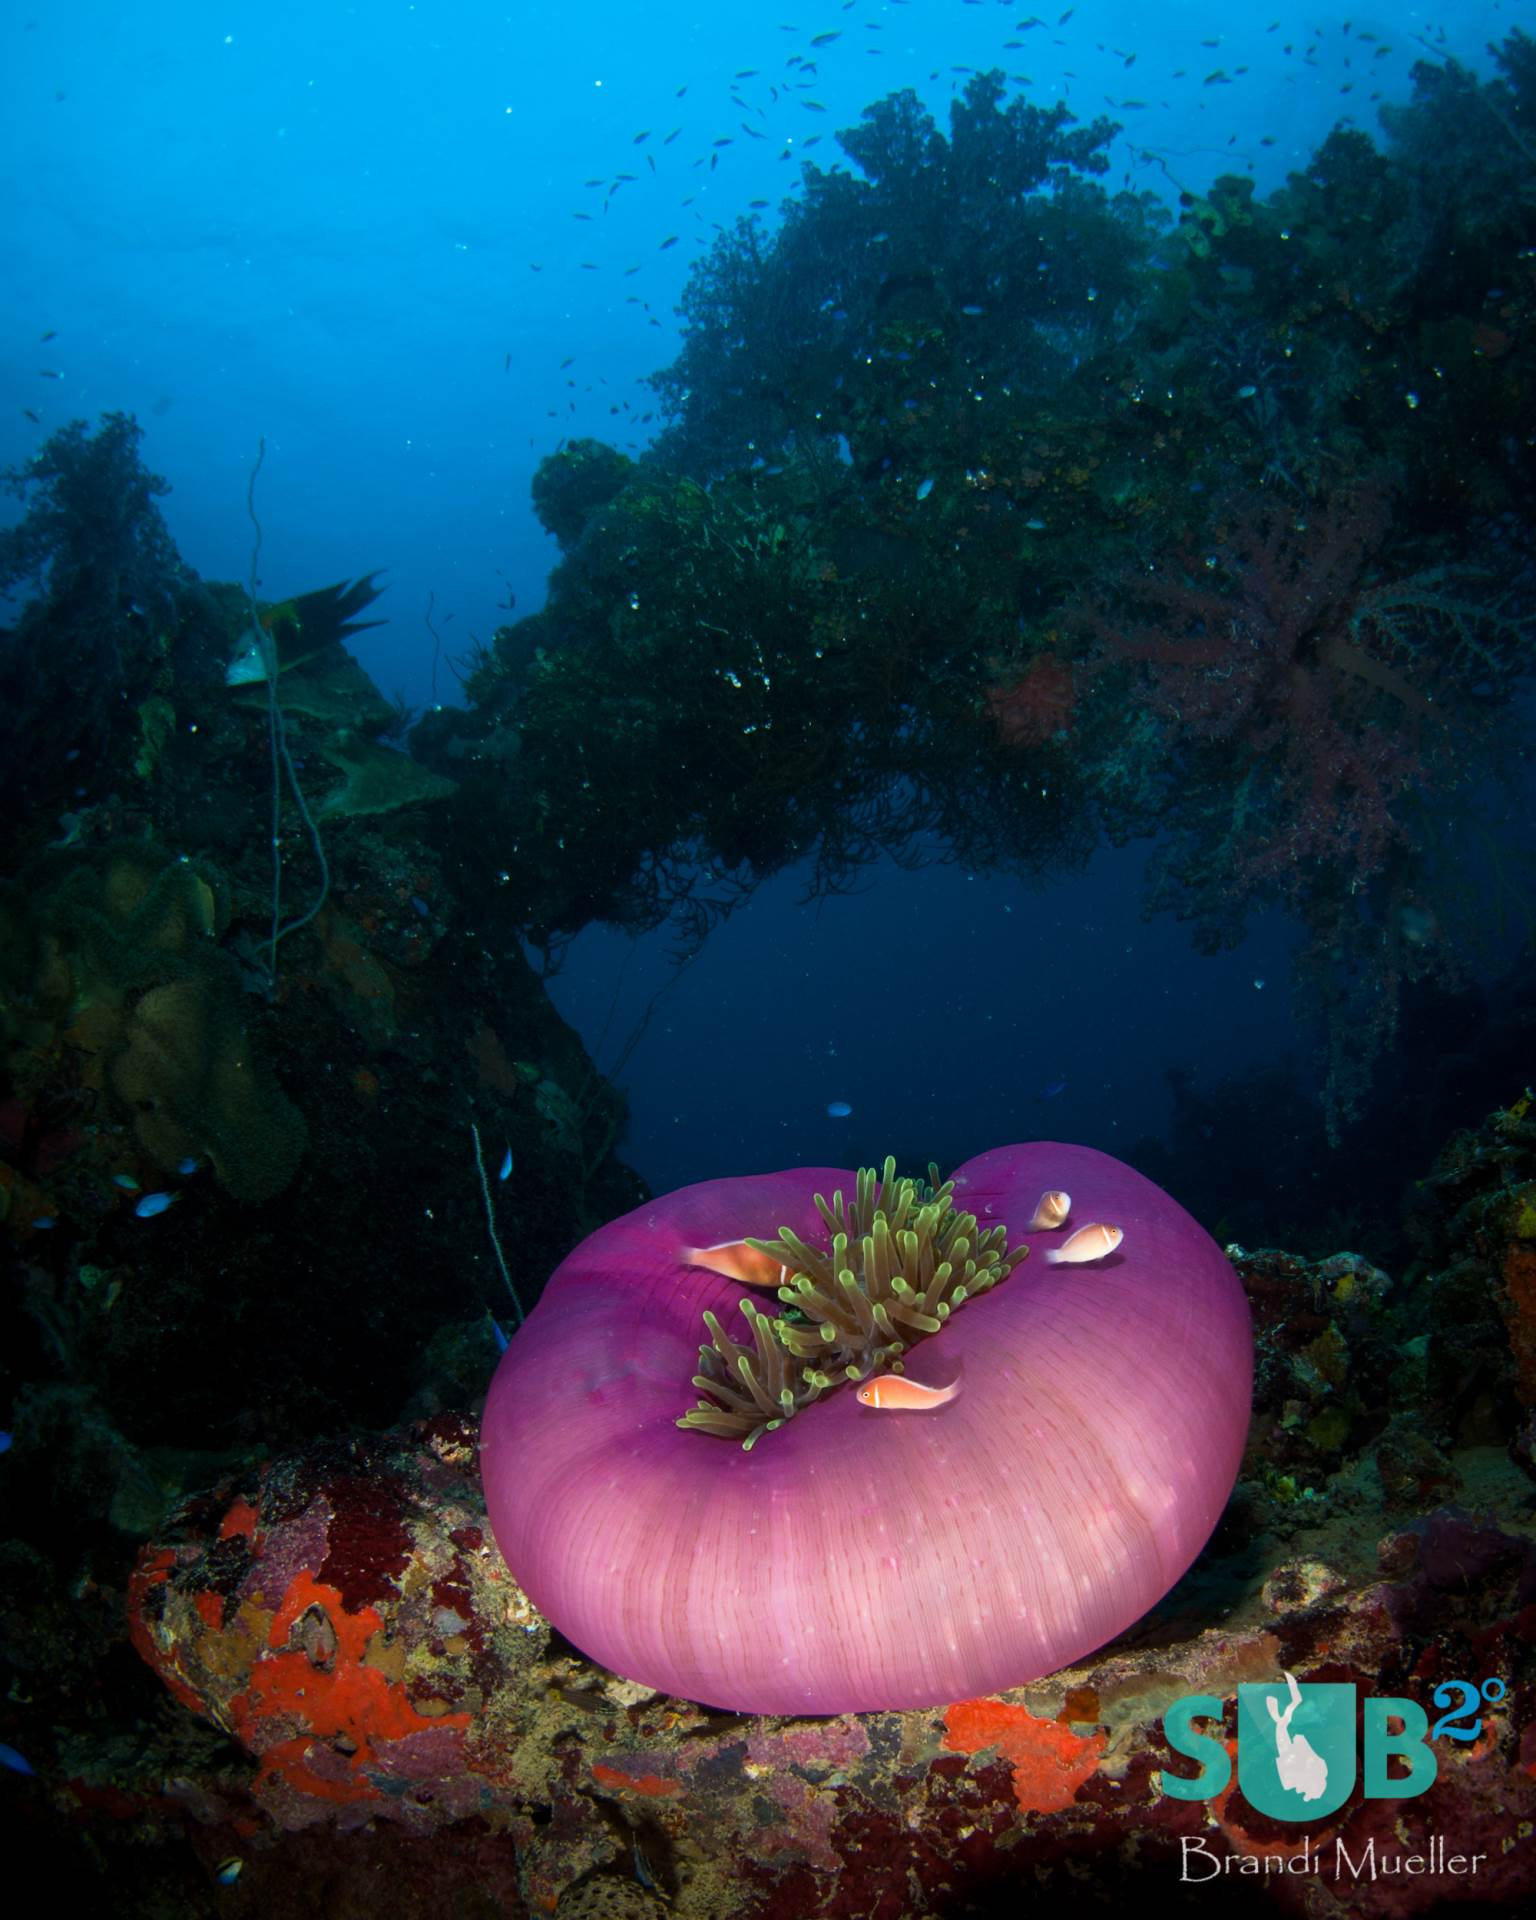 An anemone living on the deck of the Shinkoku Maru, a sunken ship that was part of the Imperial Japanese Navy during WWII.